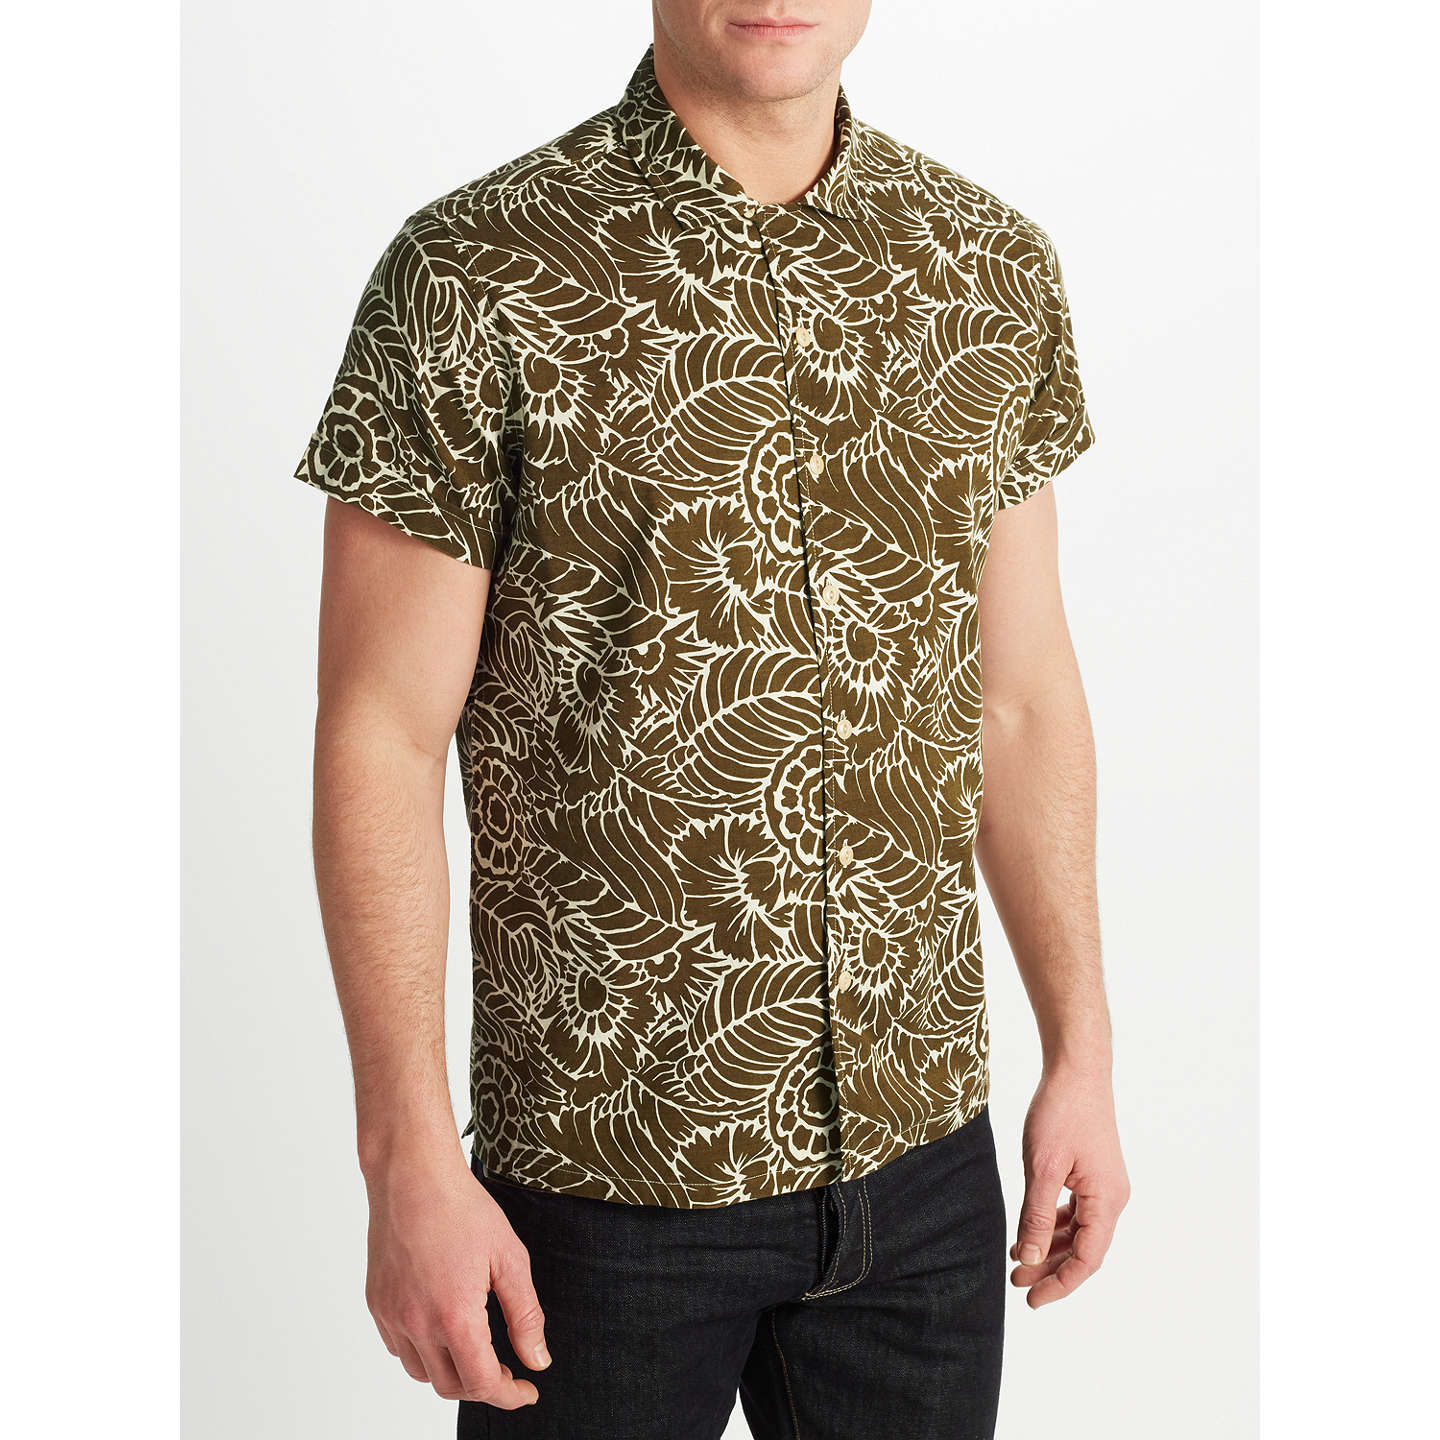 BuyJOHN LEWIS & Co. Thistle Flower Print Short Sleeve Shirt, Khaki, S Online at johnlewis.com